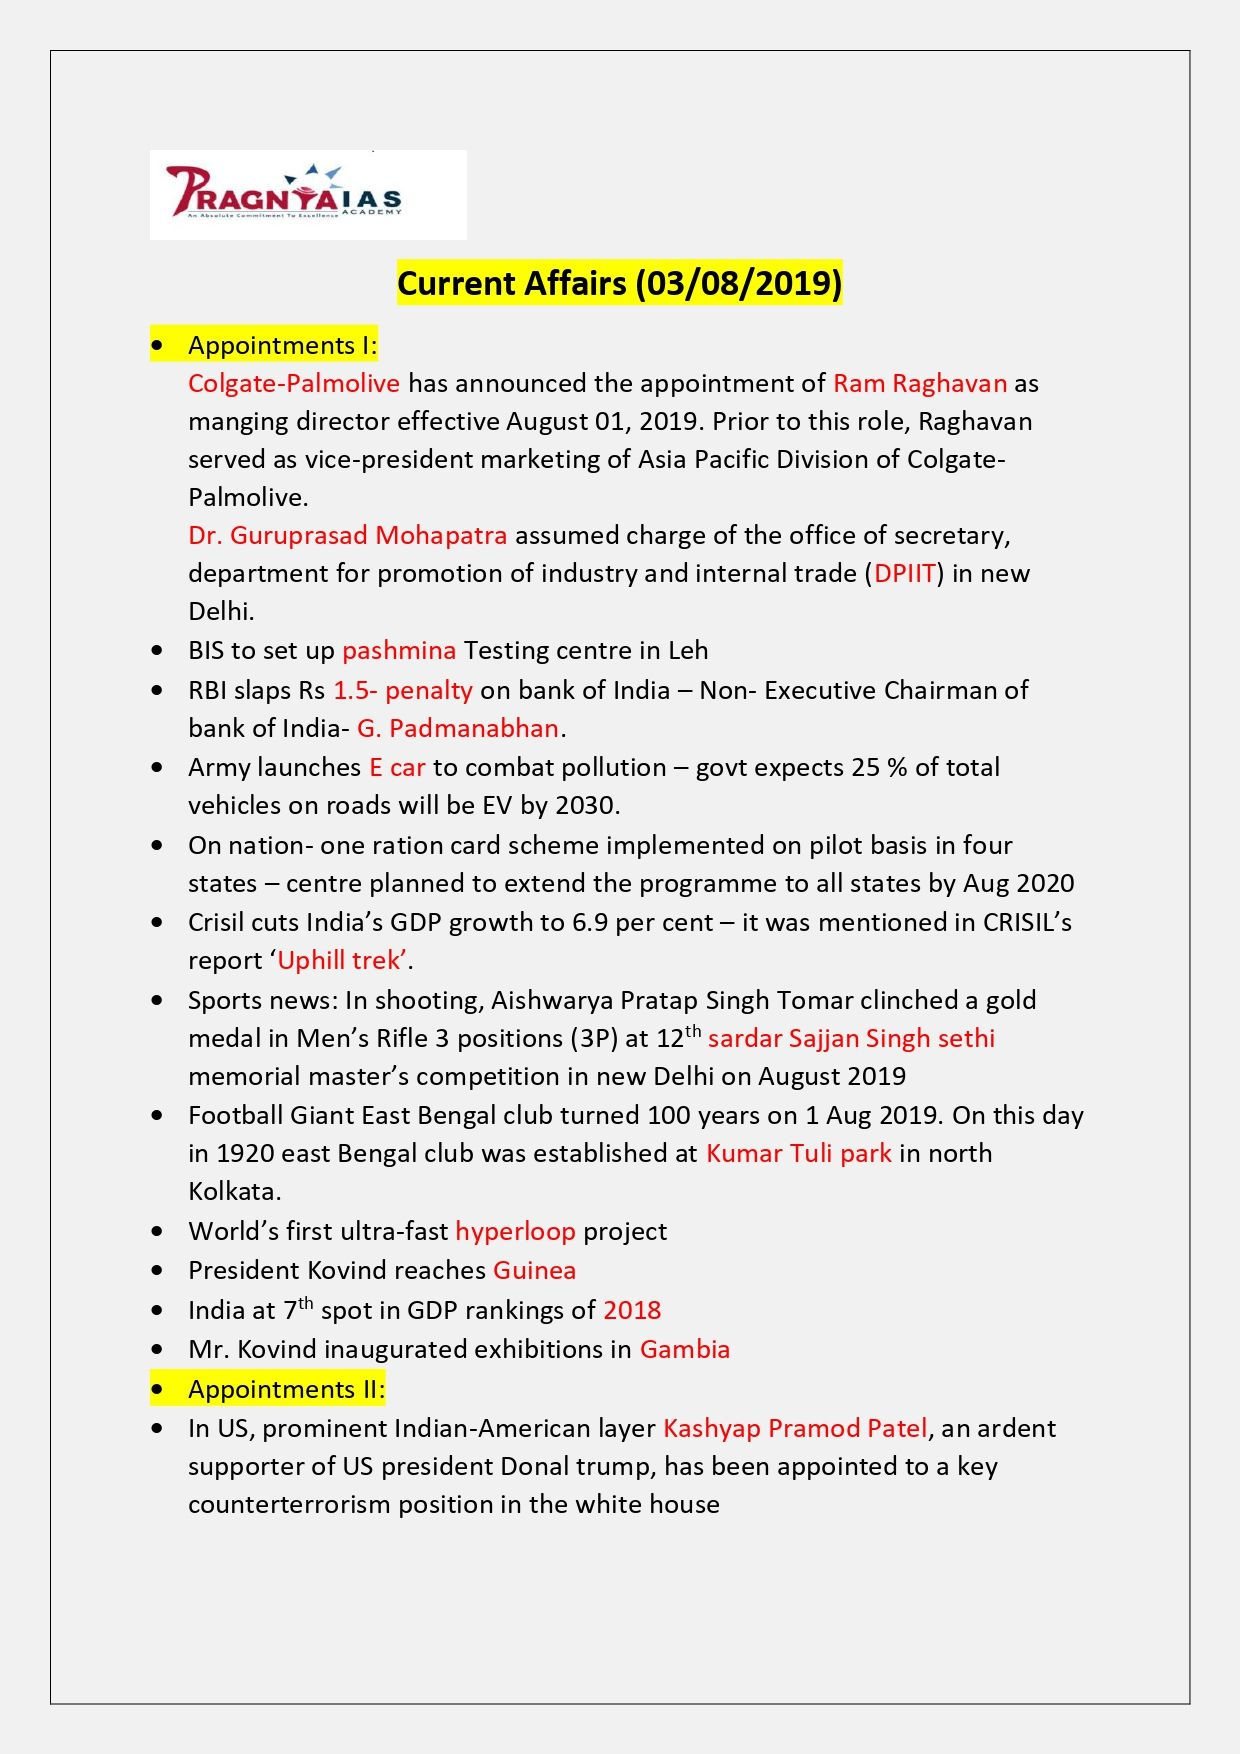 Current Affairs Part1 for IAS/UPSC Aspirants (03.08.2019